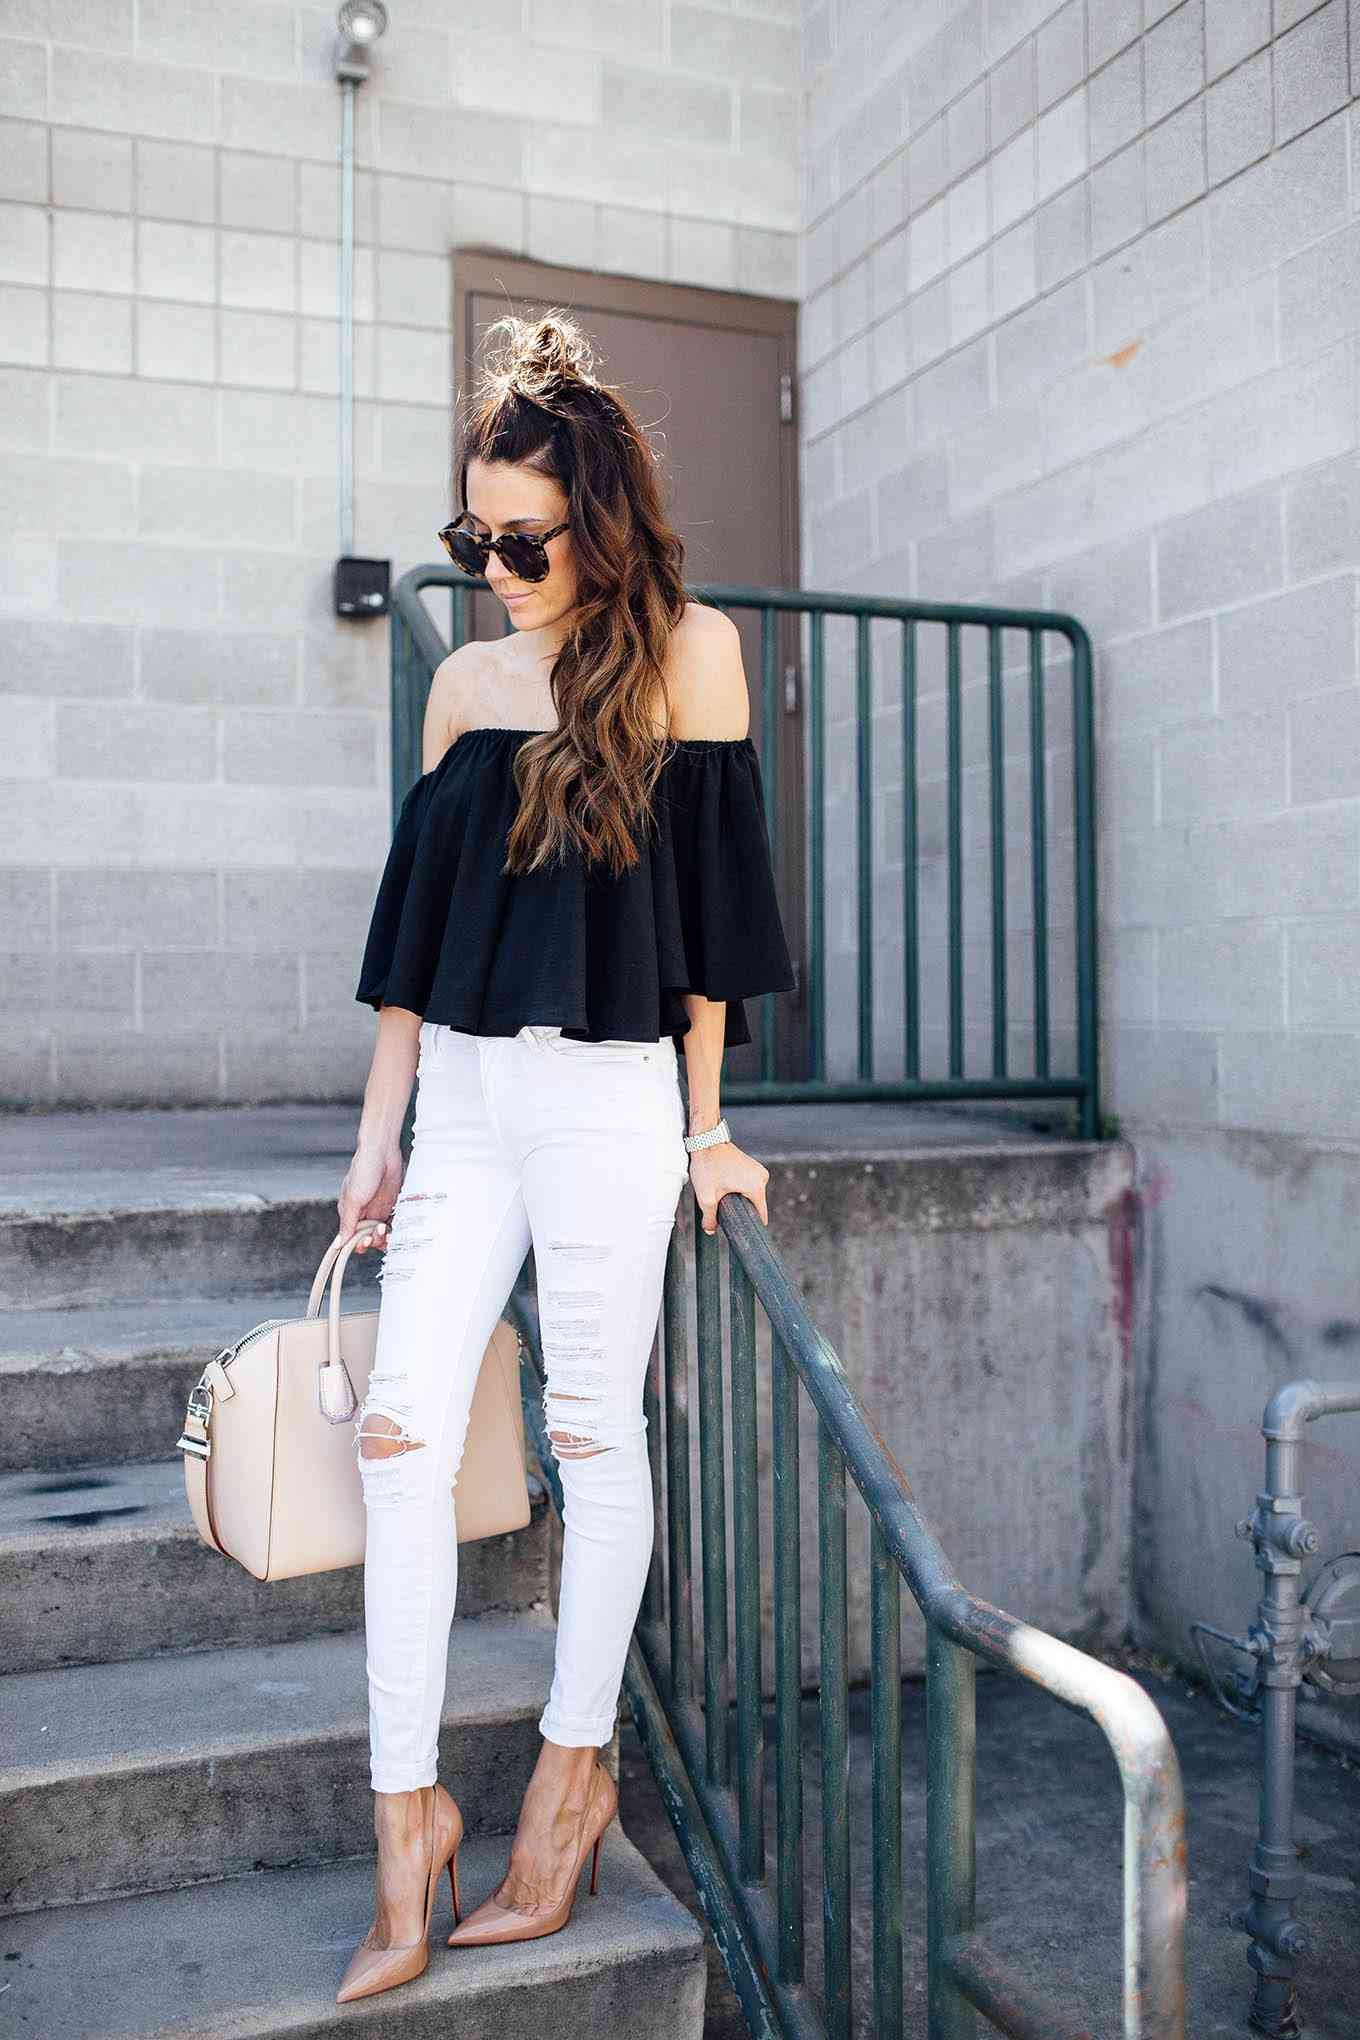 dbcde5f3b8b 14 Chic Ways to Rock White Skinny Jeans